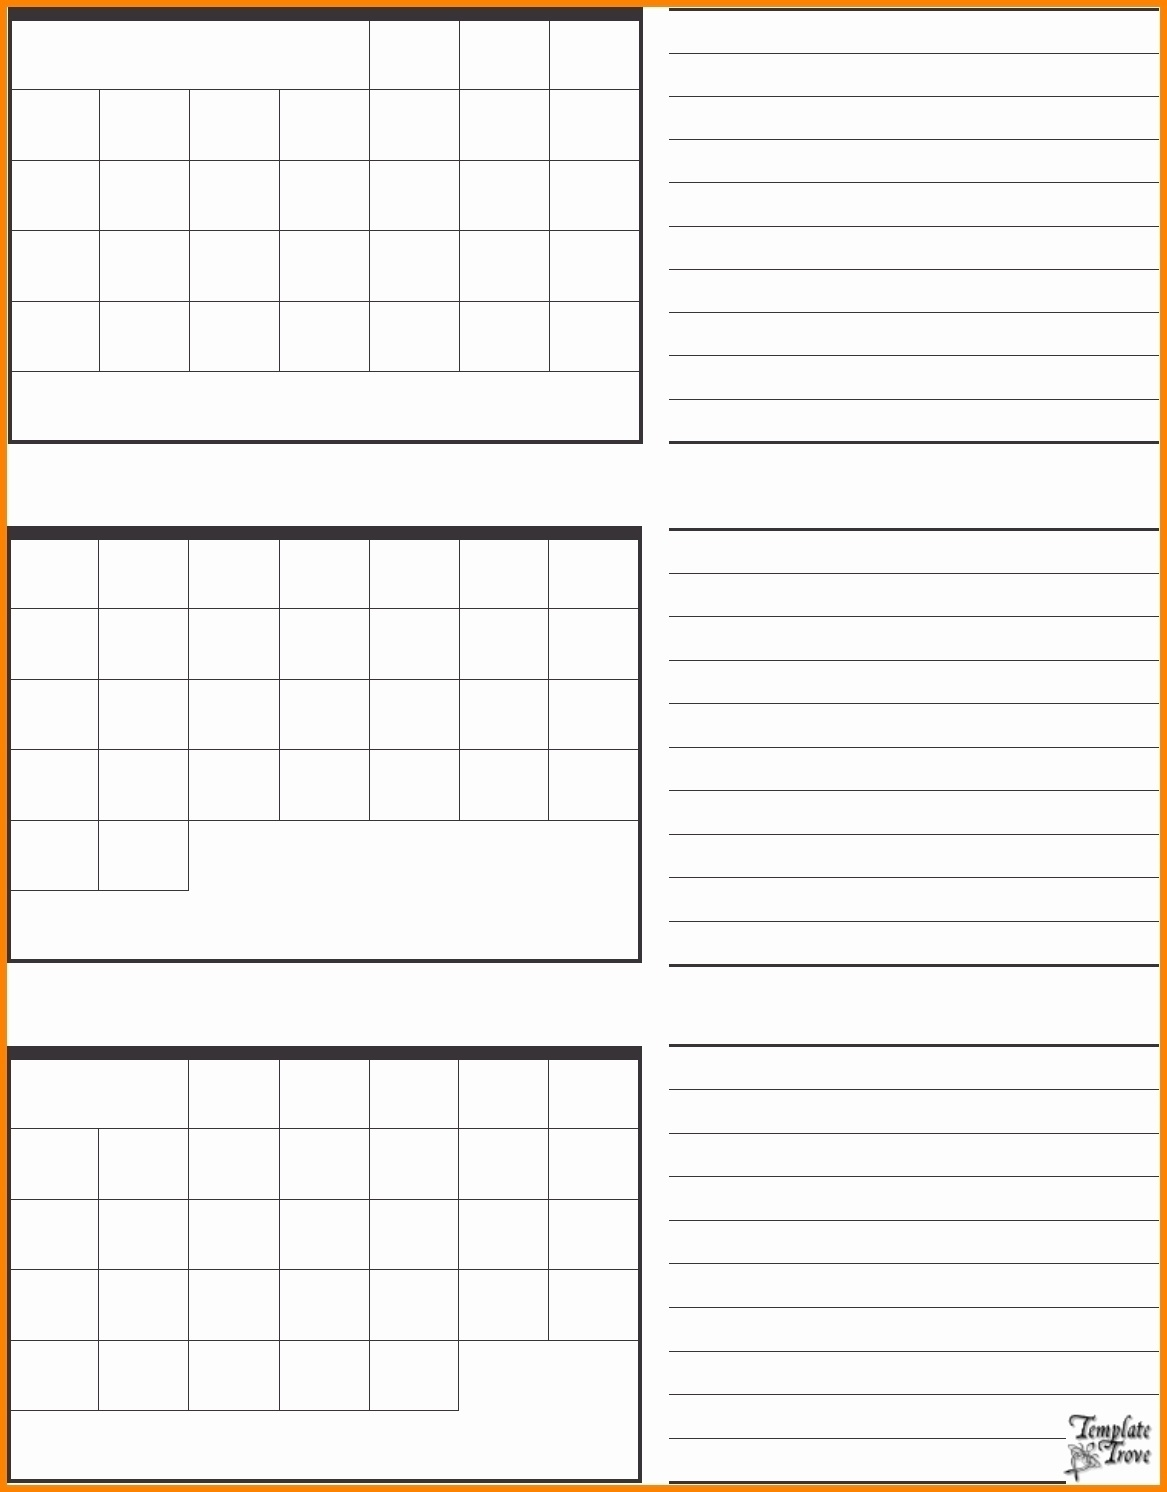 3 Month Calendar Free Printable | Blank Calendar Template  Free 3 Month Calendars To Print